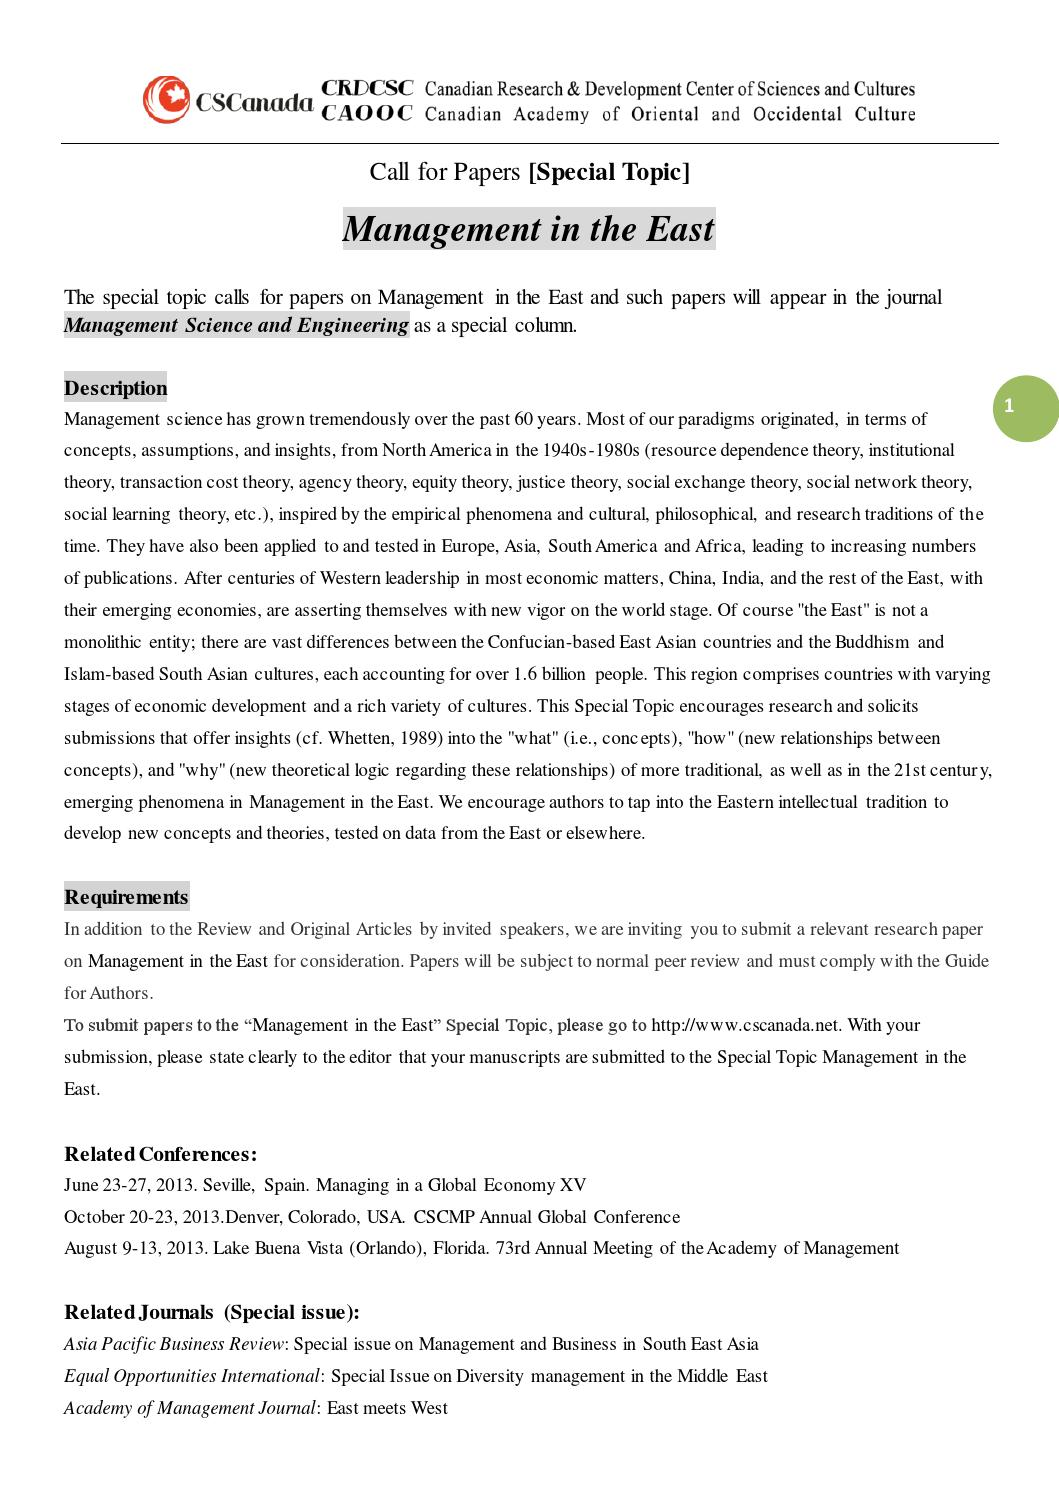 Mse special topic management in the east by CSCanada - issuu